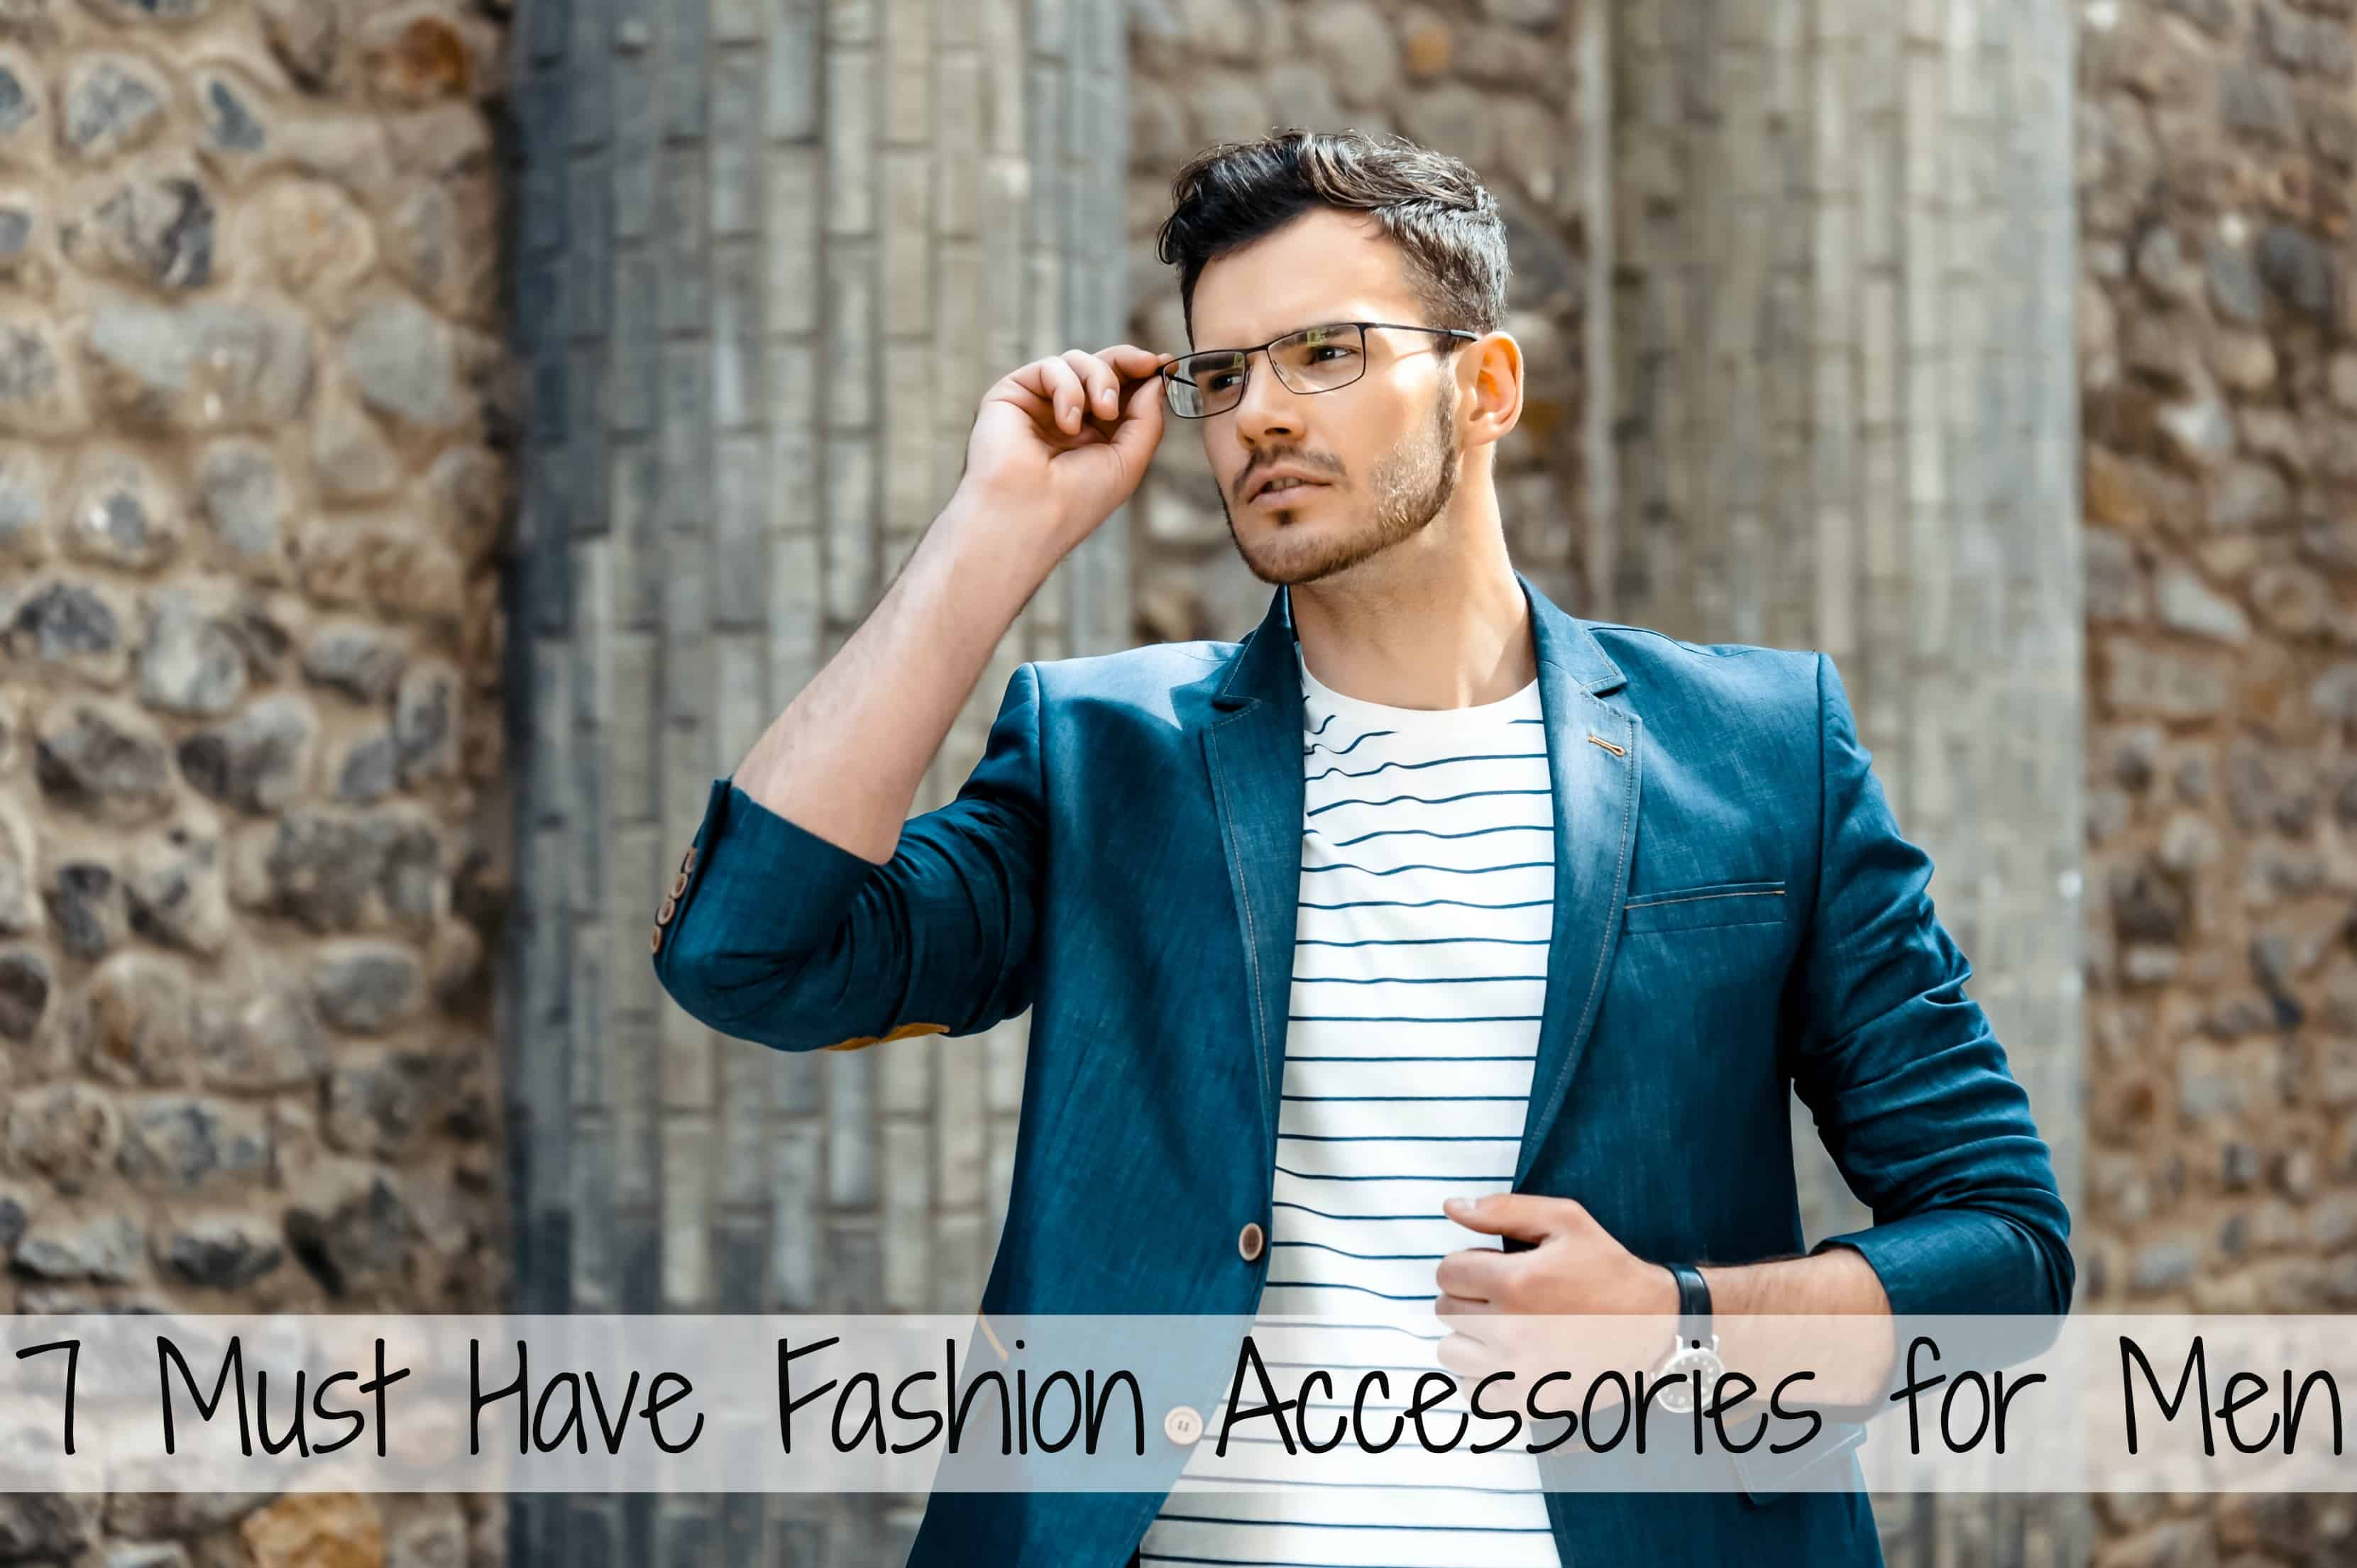 7 Accessory Fashion Must Haves